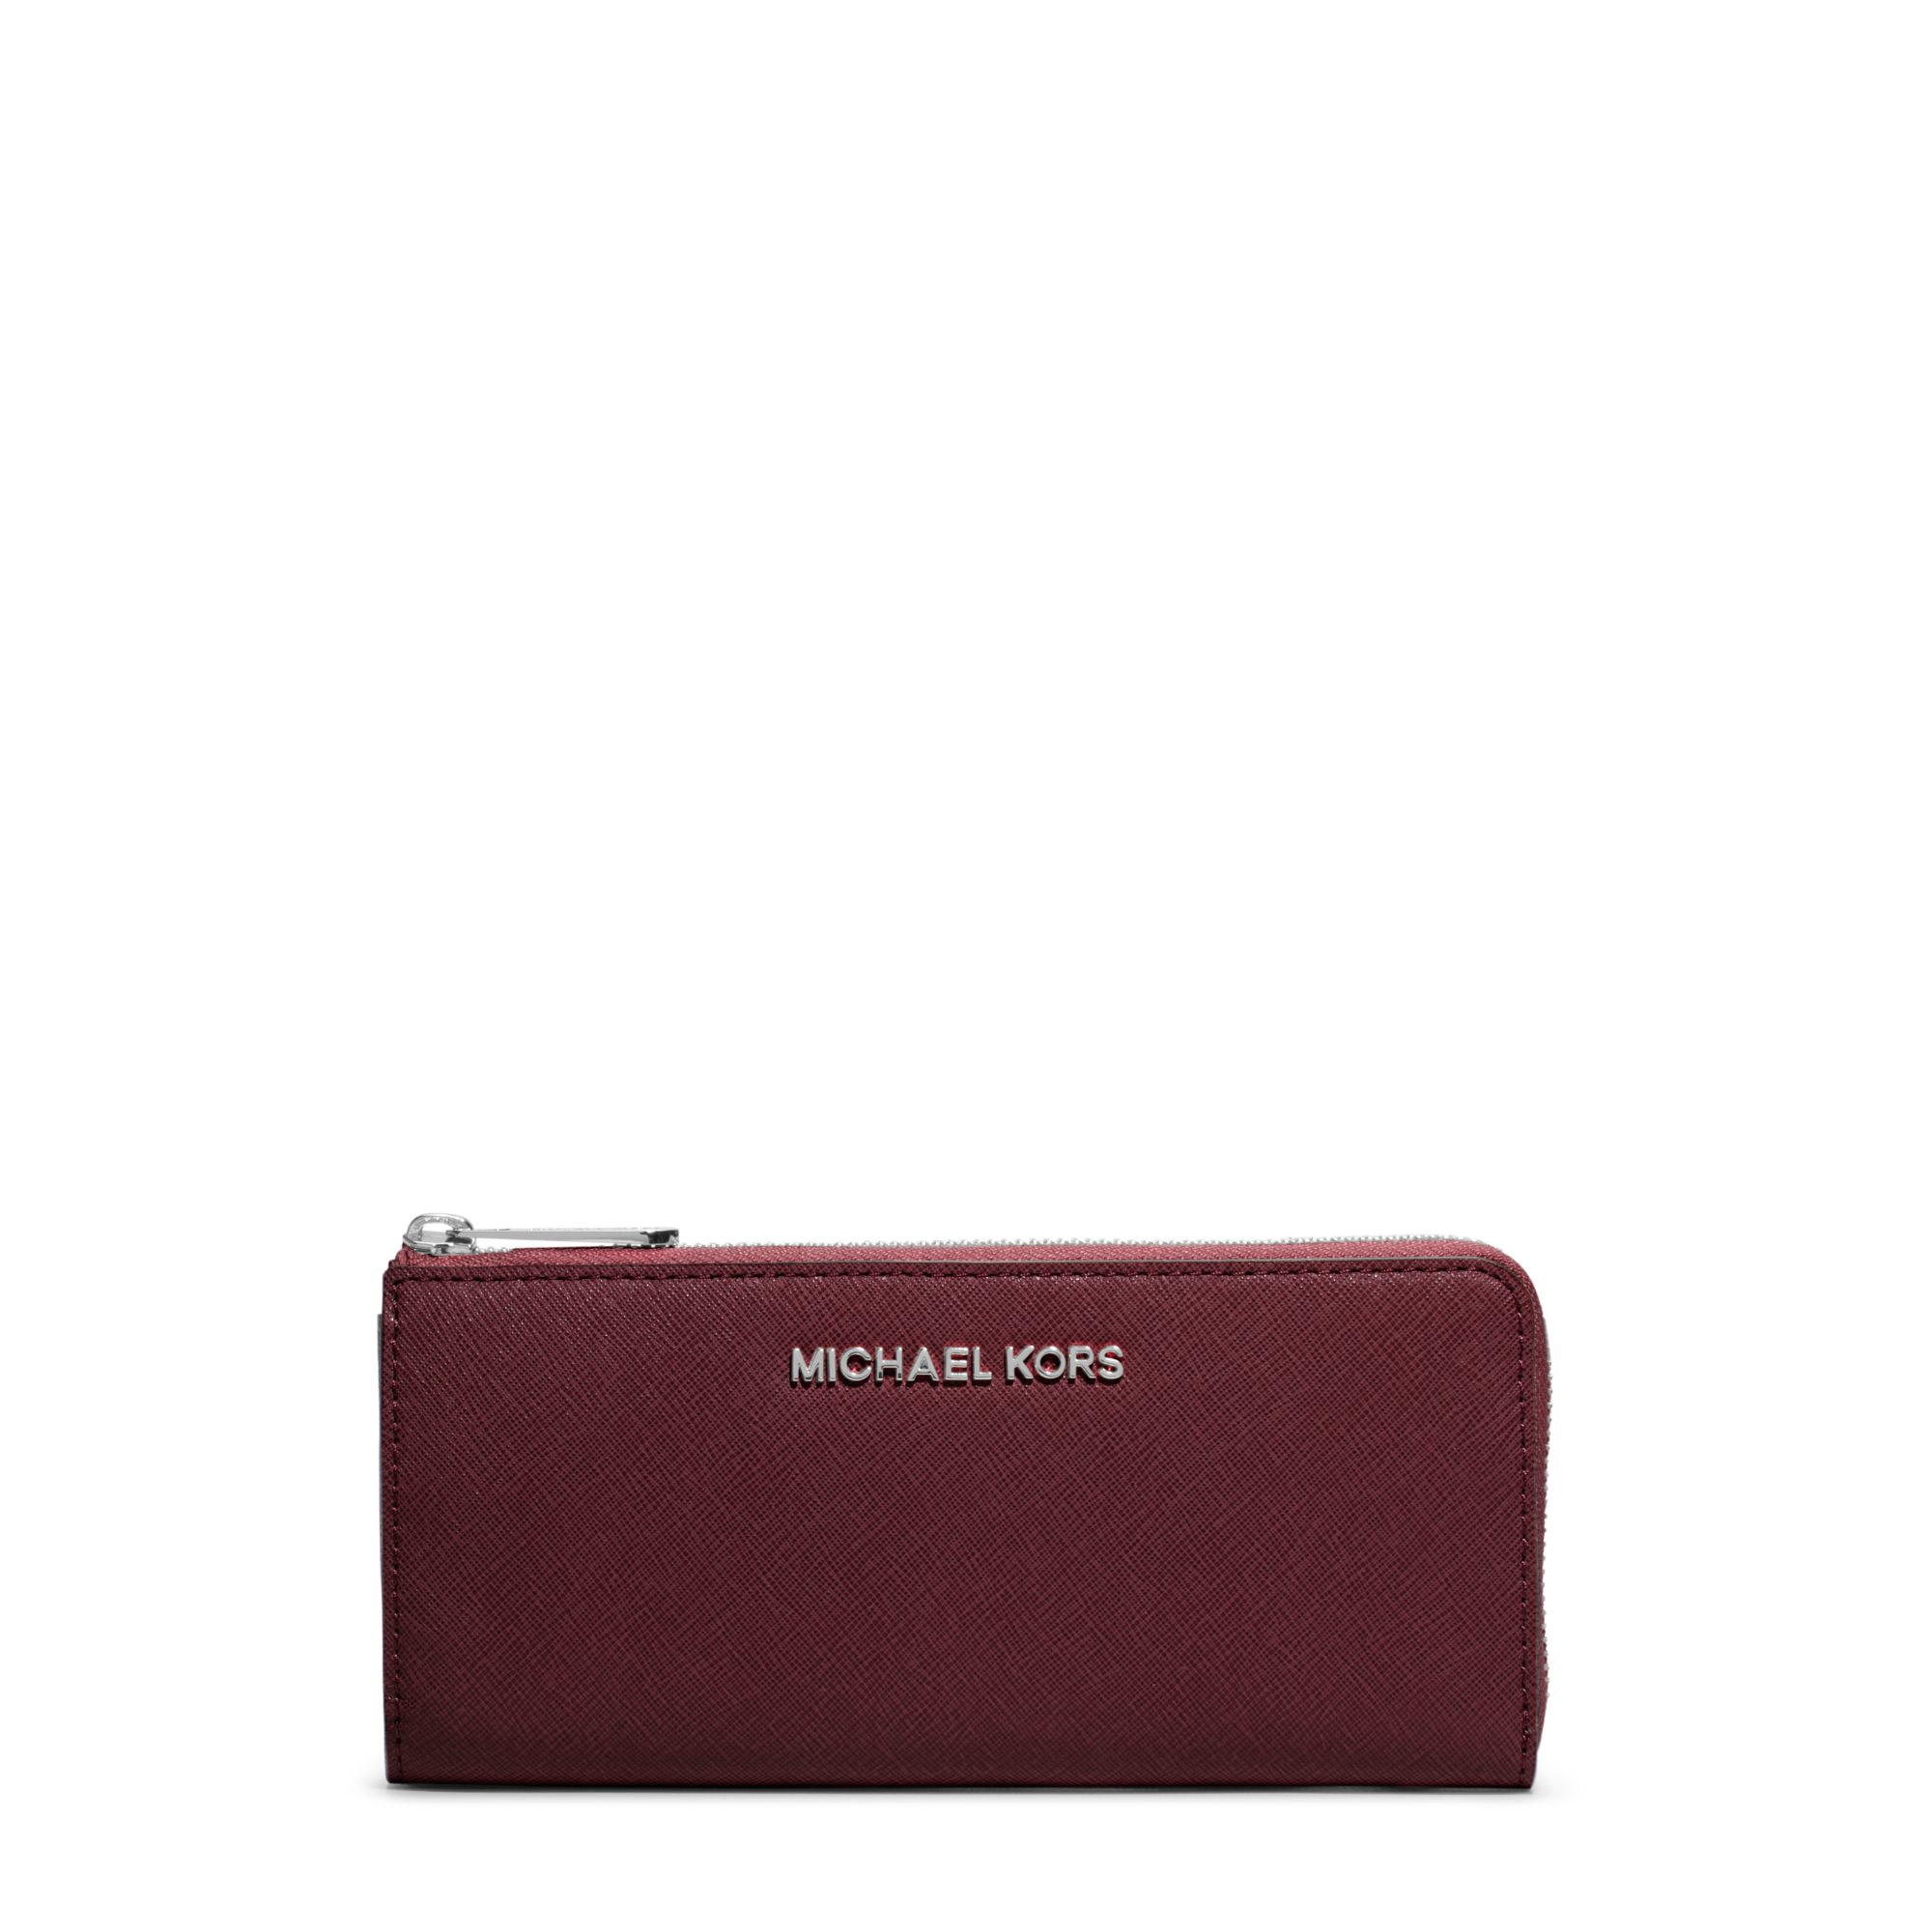 f3e991cc6518e6 Saffiano Leather Wallet Michael Kors | Stanford Center for ...